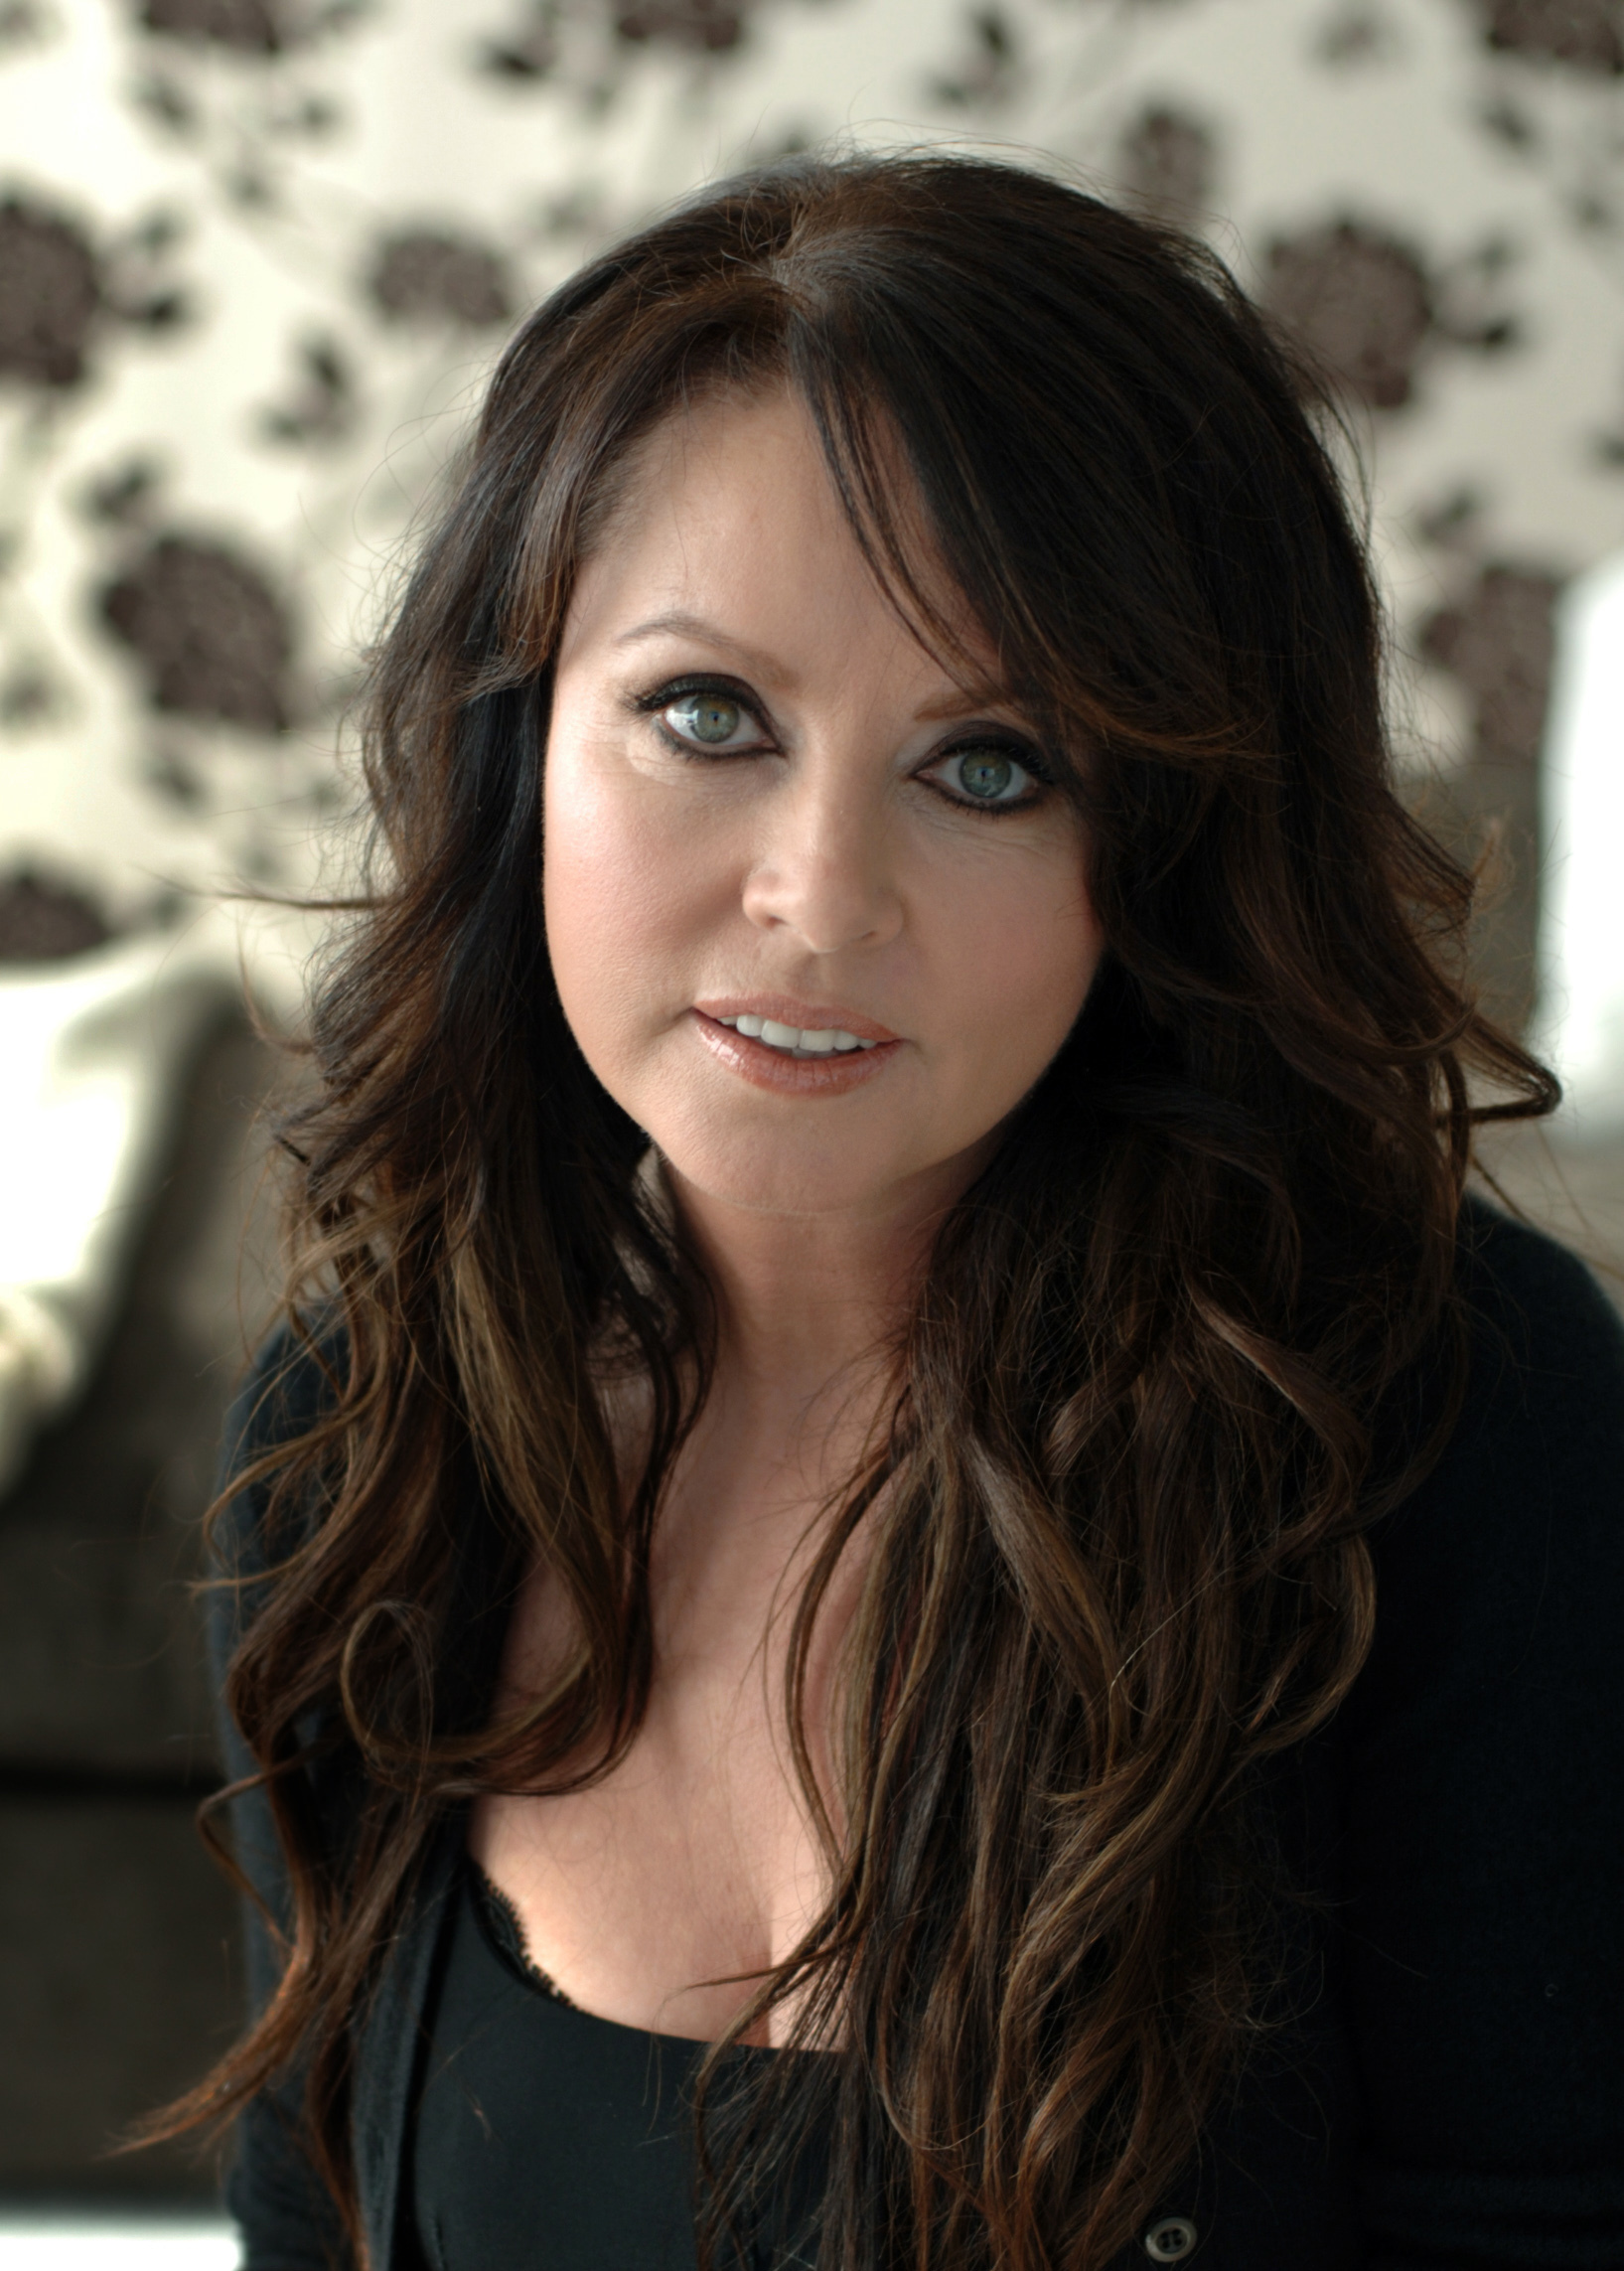 Sarah Brightman And The Starship Troopers The Adventures Of The Love Crusader